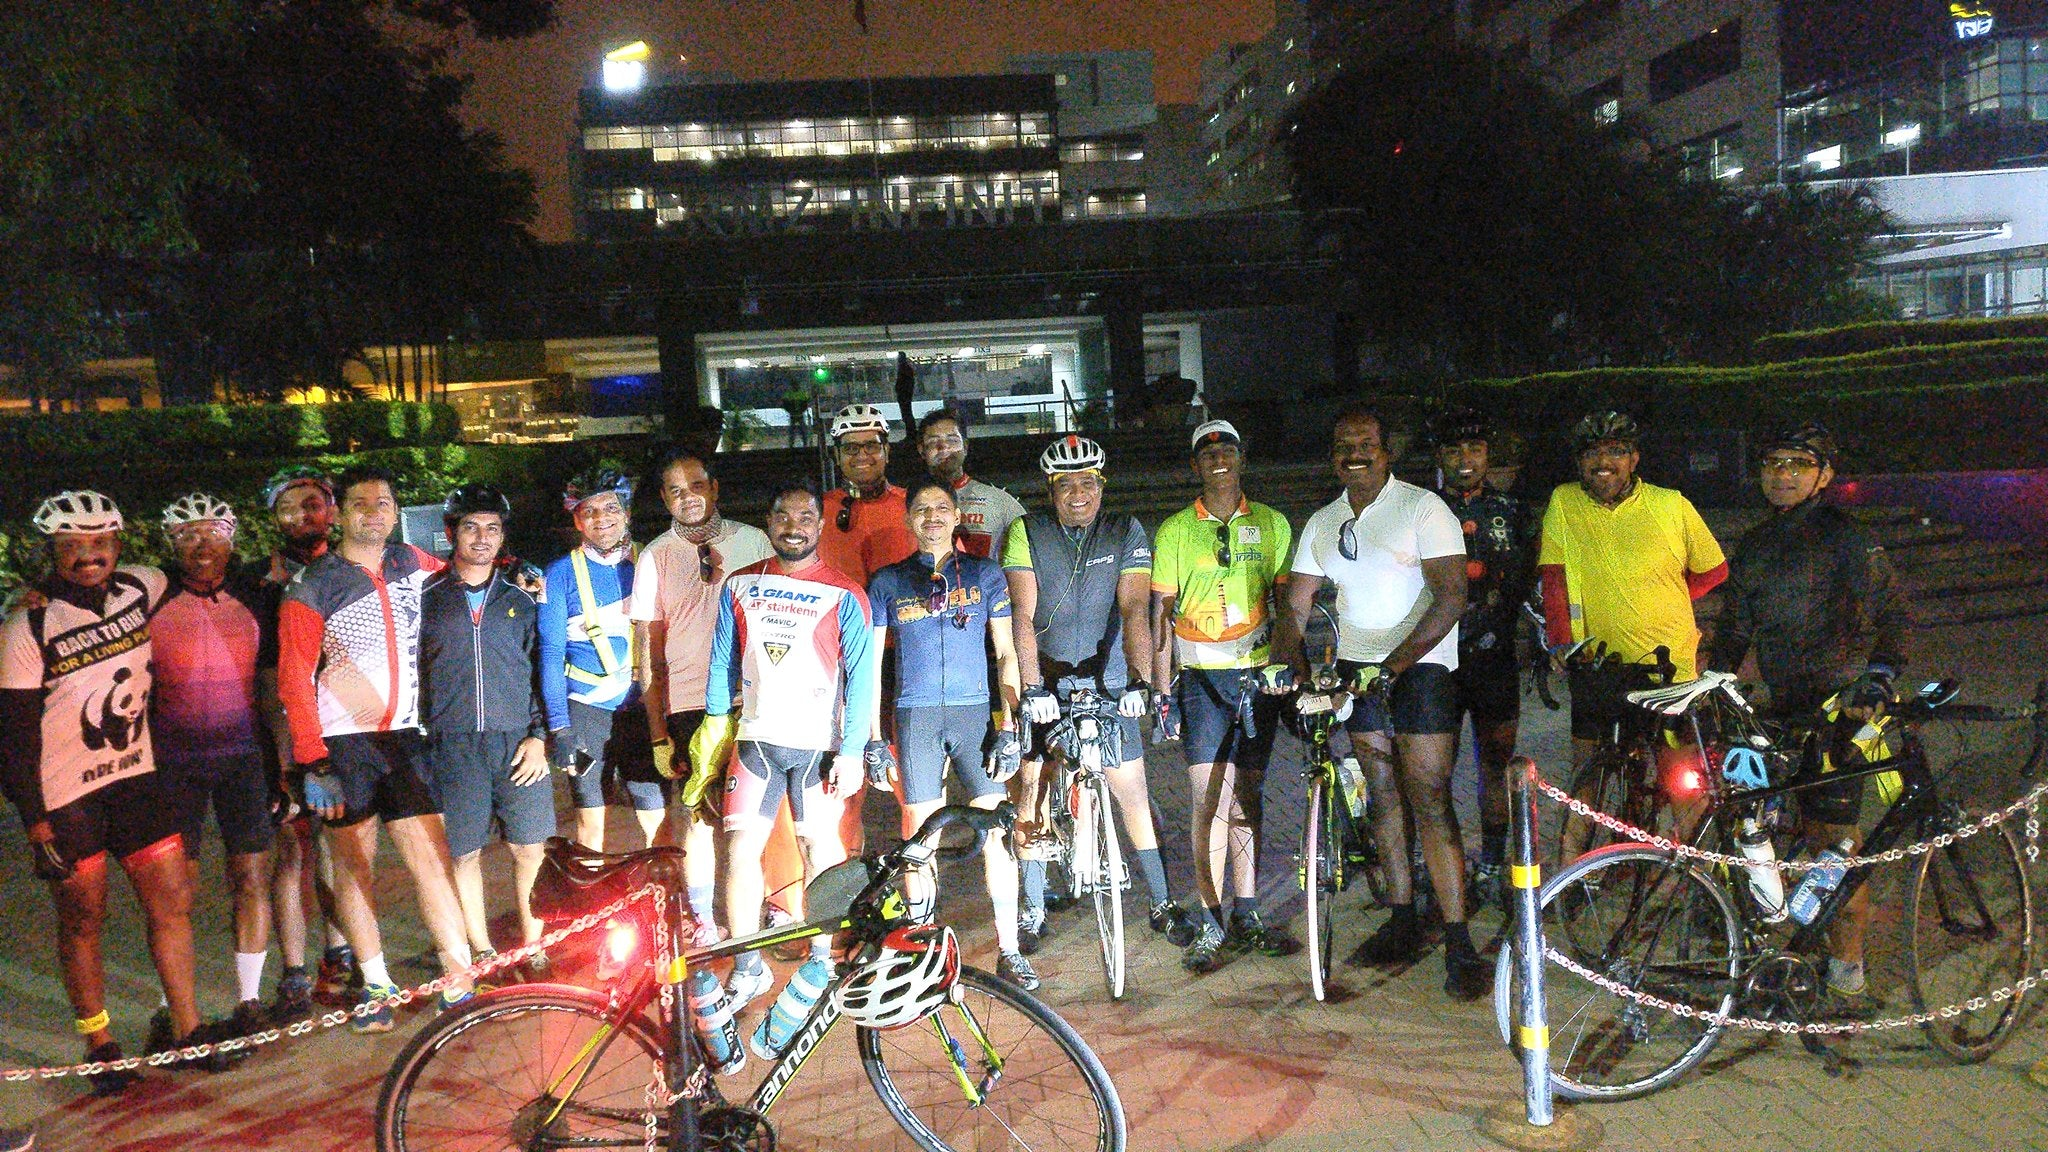 Biju Kunnappada on his regular epic long distance ride, from Bengaluru to Tirupati with Bangalore cyclists and friends